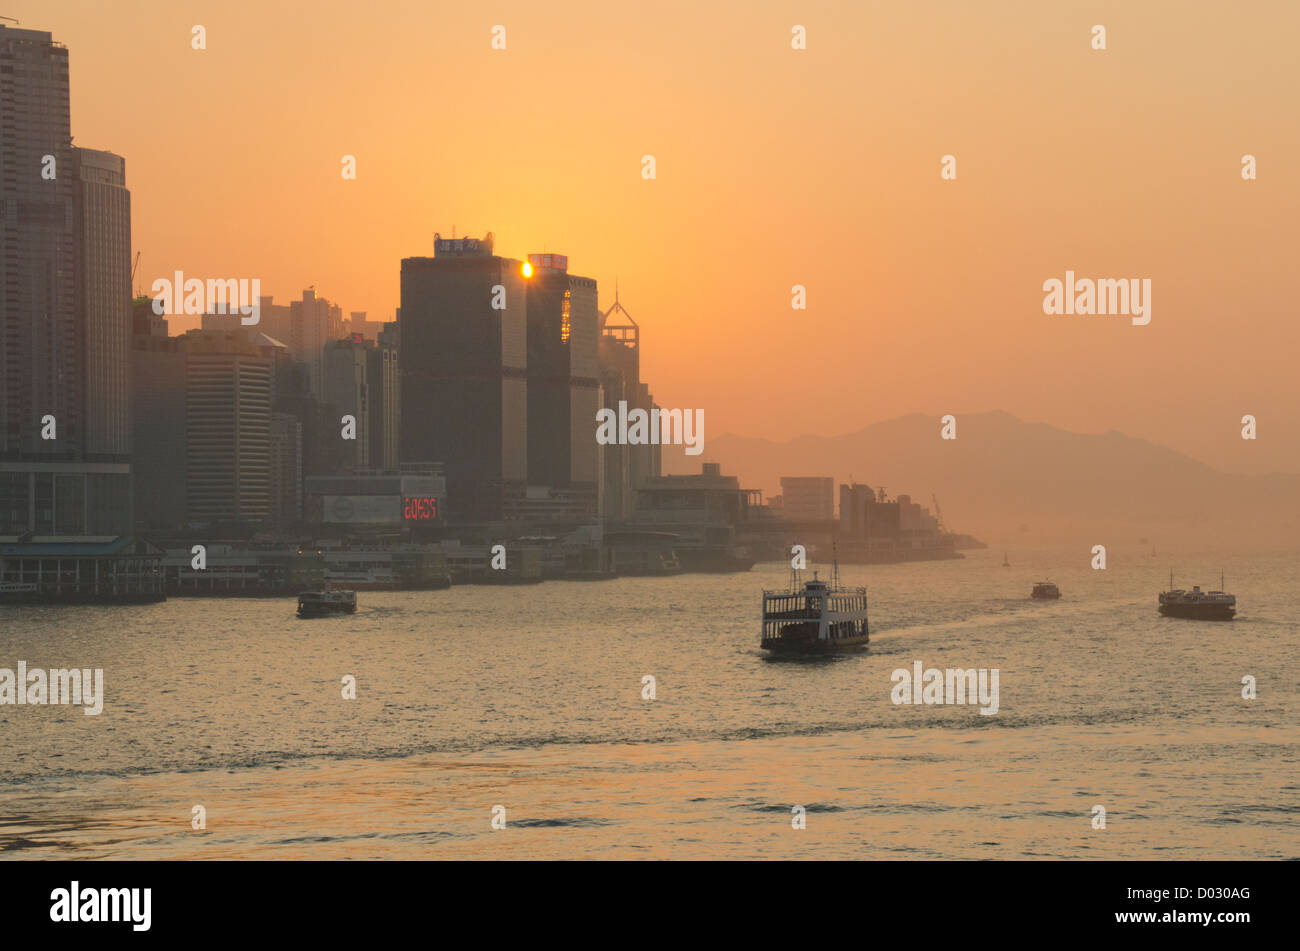 China, Hong Kong. Sunset view of Honk Kong Island from Victoria Harbor & Kowloon. - Stock Image